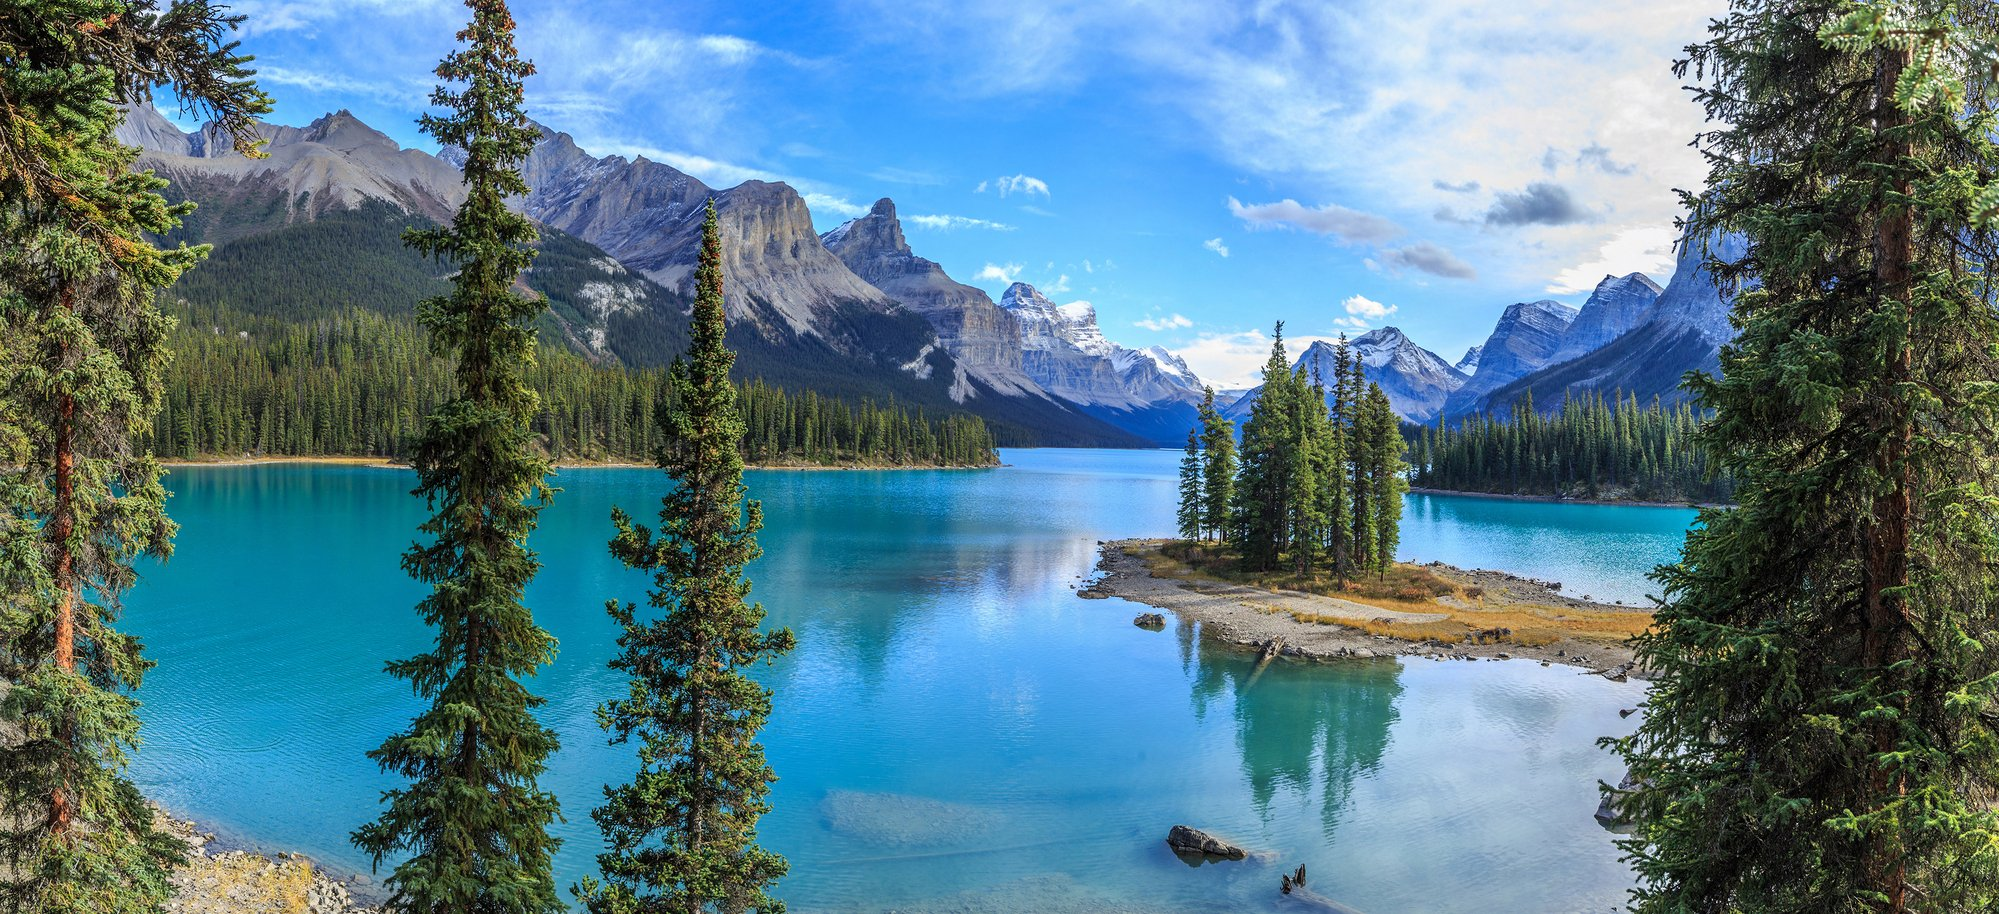 15 Breathtaking Hikes in Jasper National Park for All Levels - Urban Outdoors